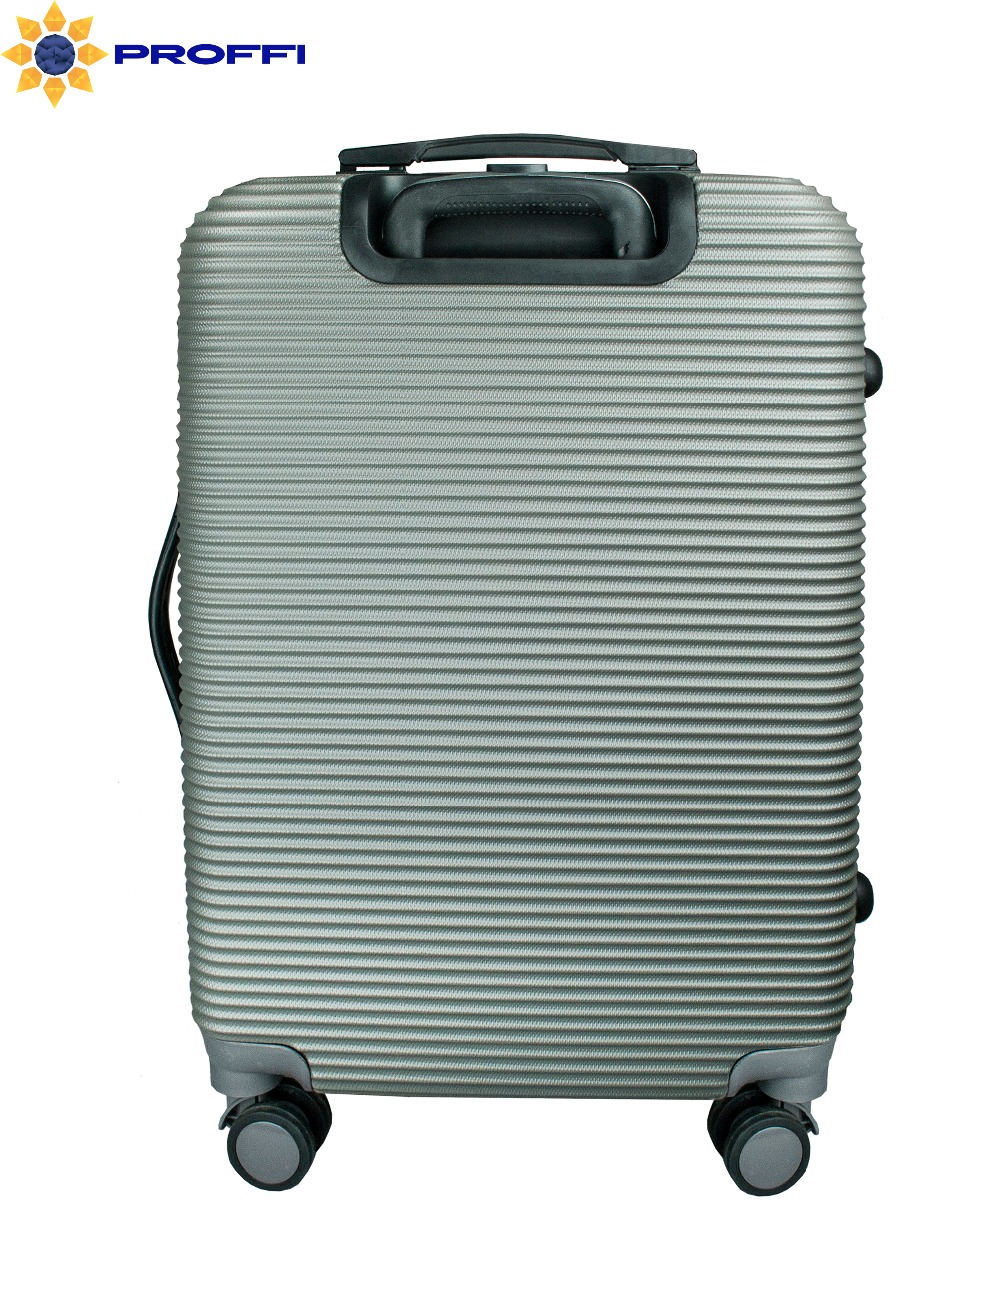 Plastic suitcase PROFFI TRAVEL PH8859grey, gray, M, with built-in scales, on wheels